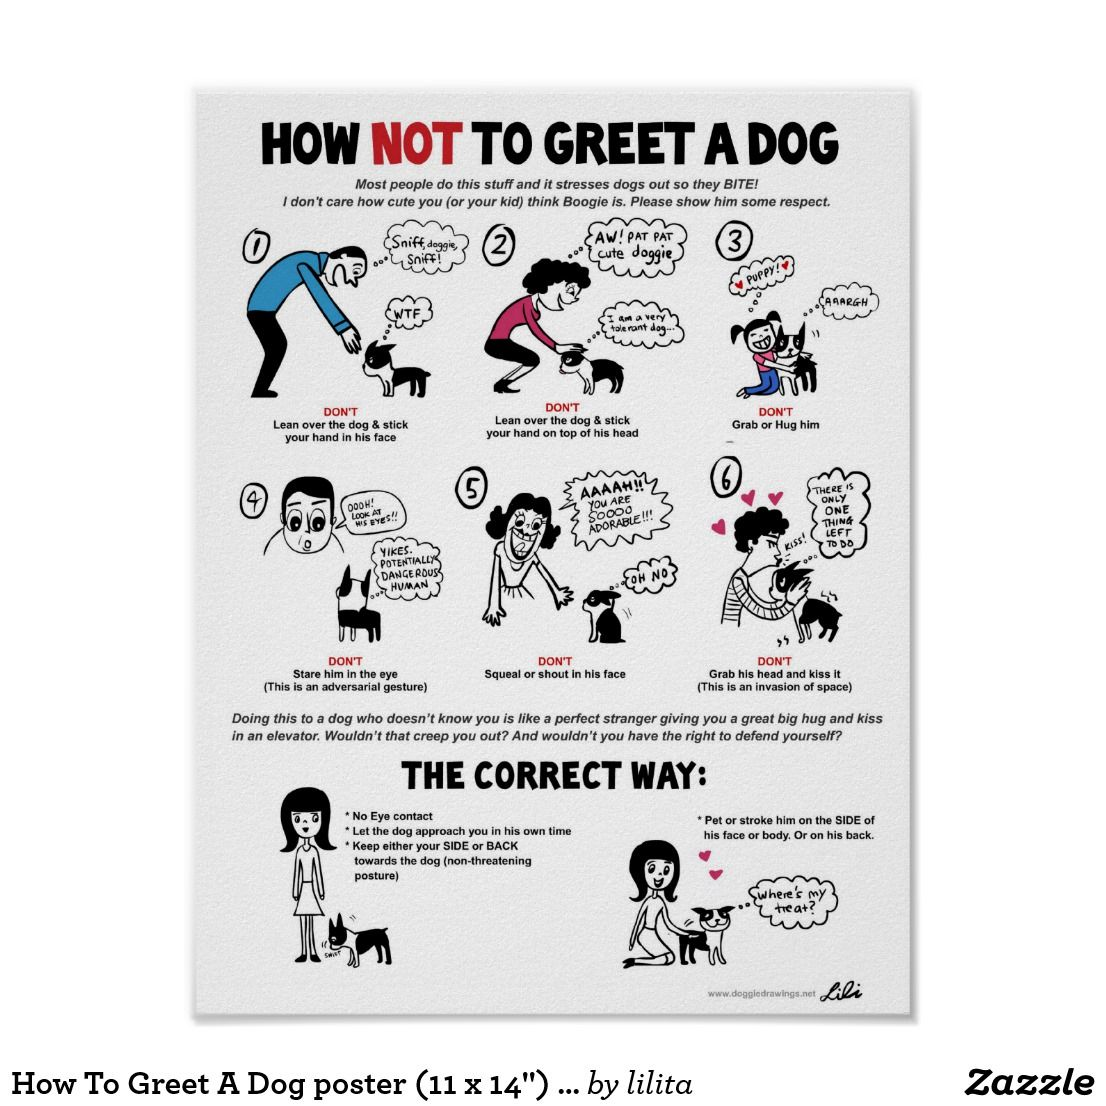 How To Greet A Dog Poster 11 X 14 By Lili Chi Zazzle Com